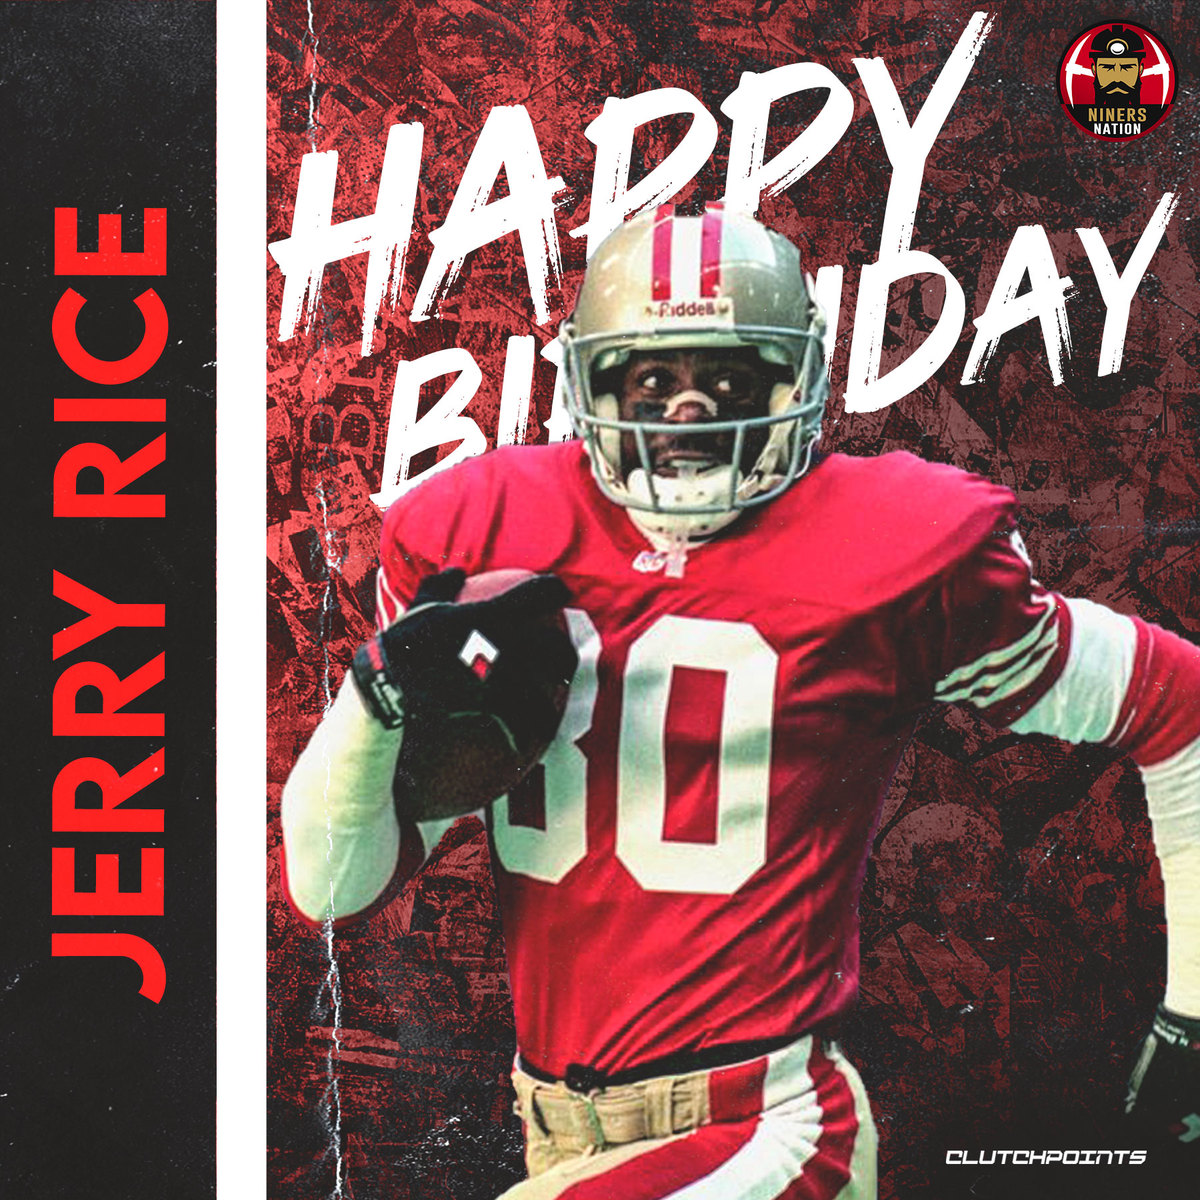 Let s not forget to greet the man, the myth, the legend, Jerry Rice a happy 59th birthday!